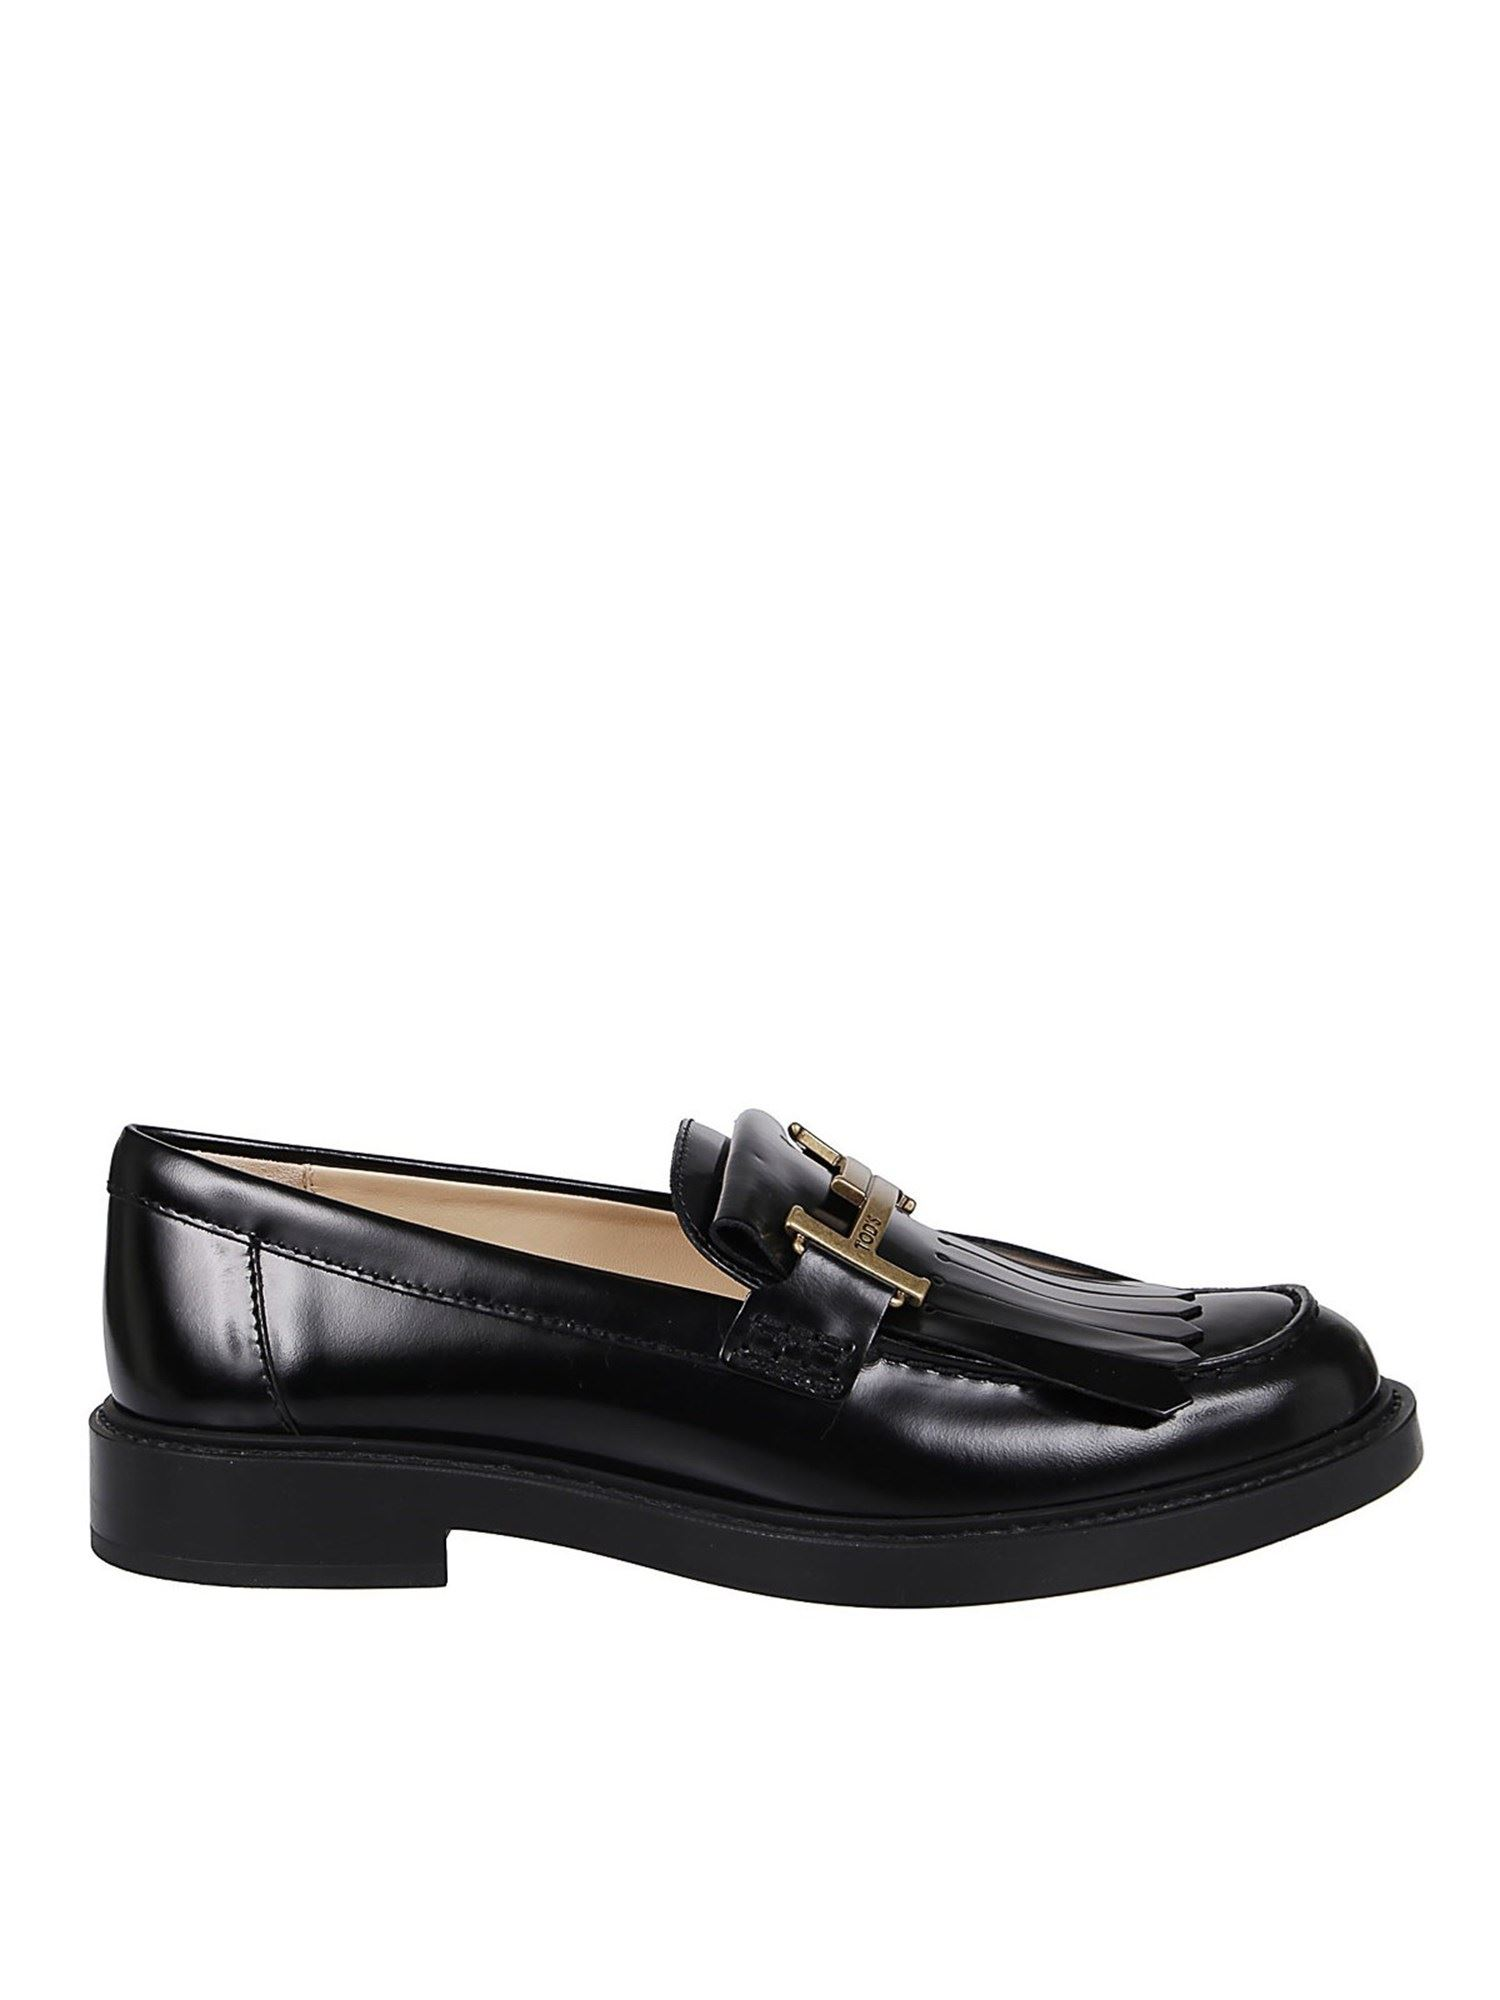 TOD'S BRUSHED LEATHER LOAFERS IN BLACK